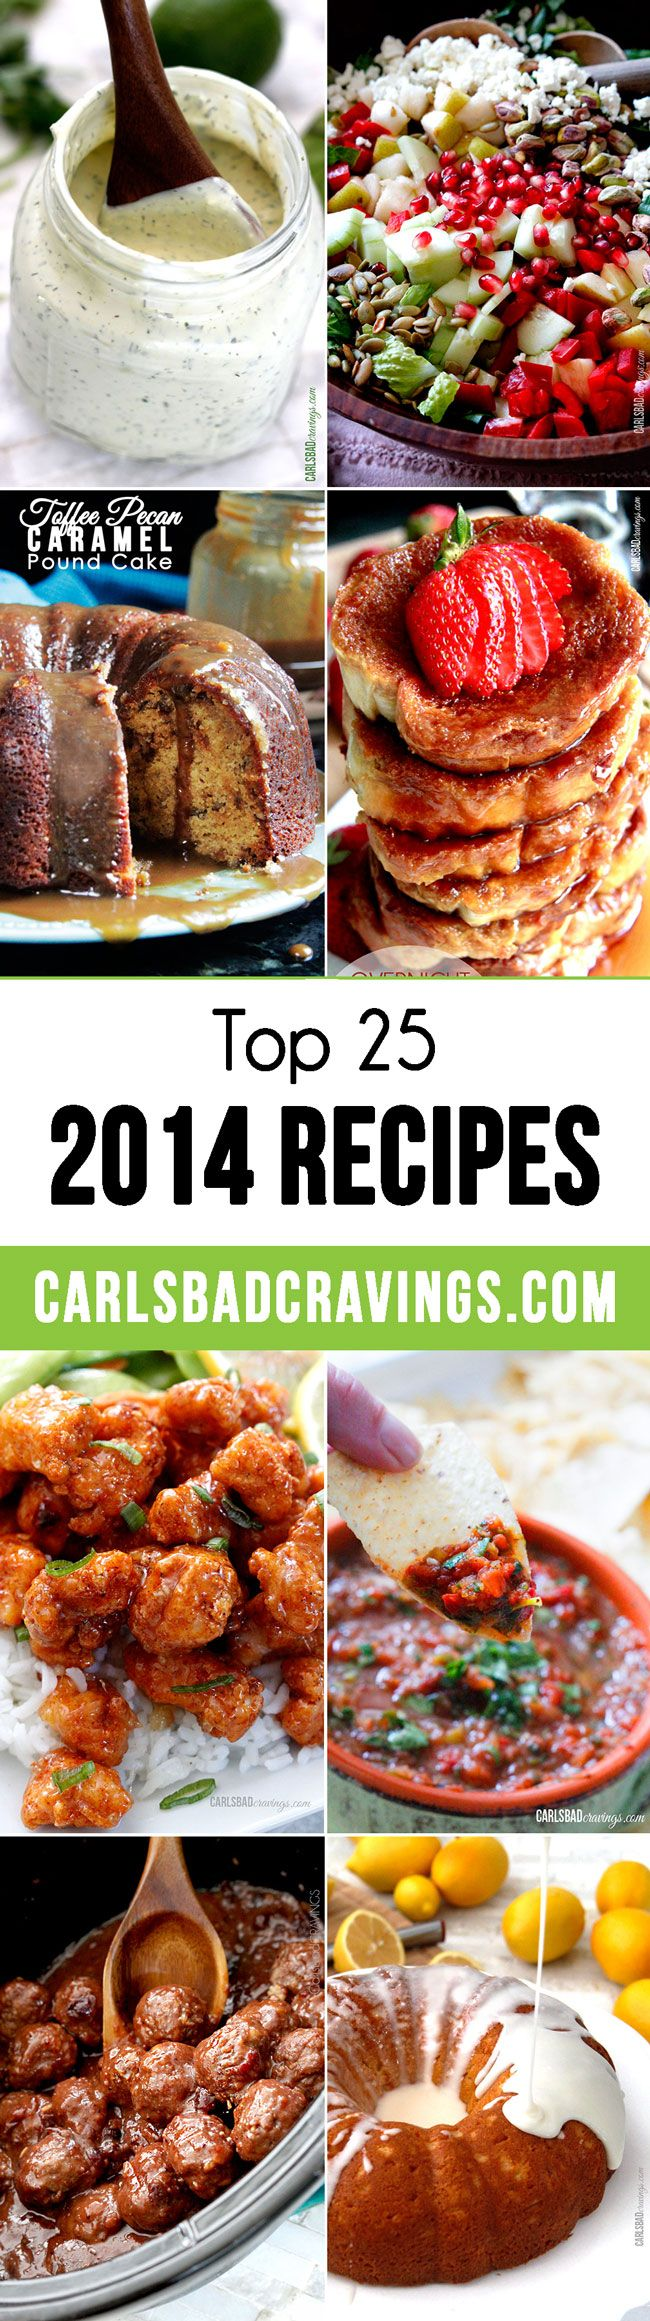 Top 25 Carlsbad Cravings Recipes of 2014 - a lot of MUST MAKES on this list! #toprecipes #popularrecipes